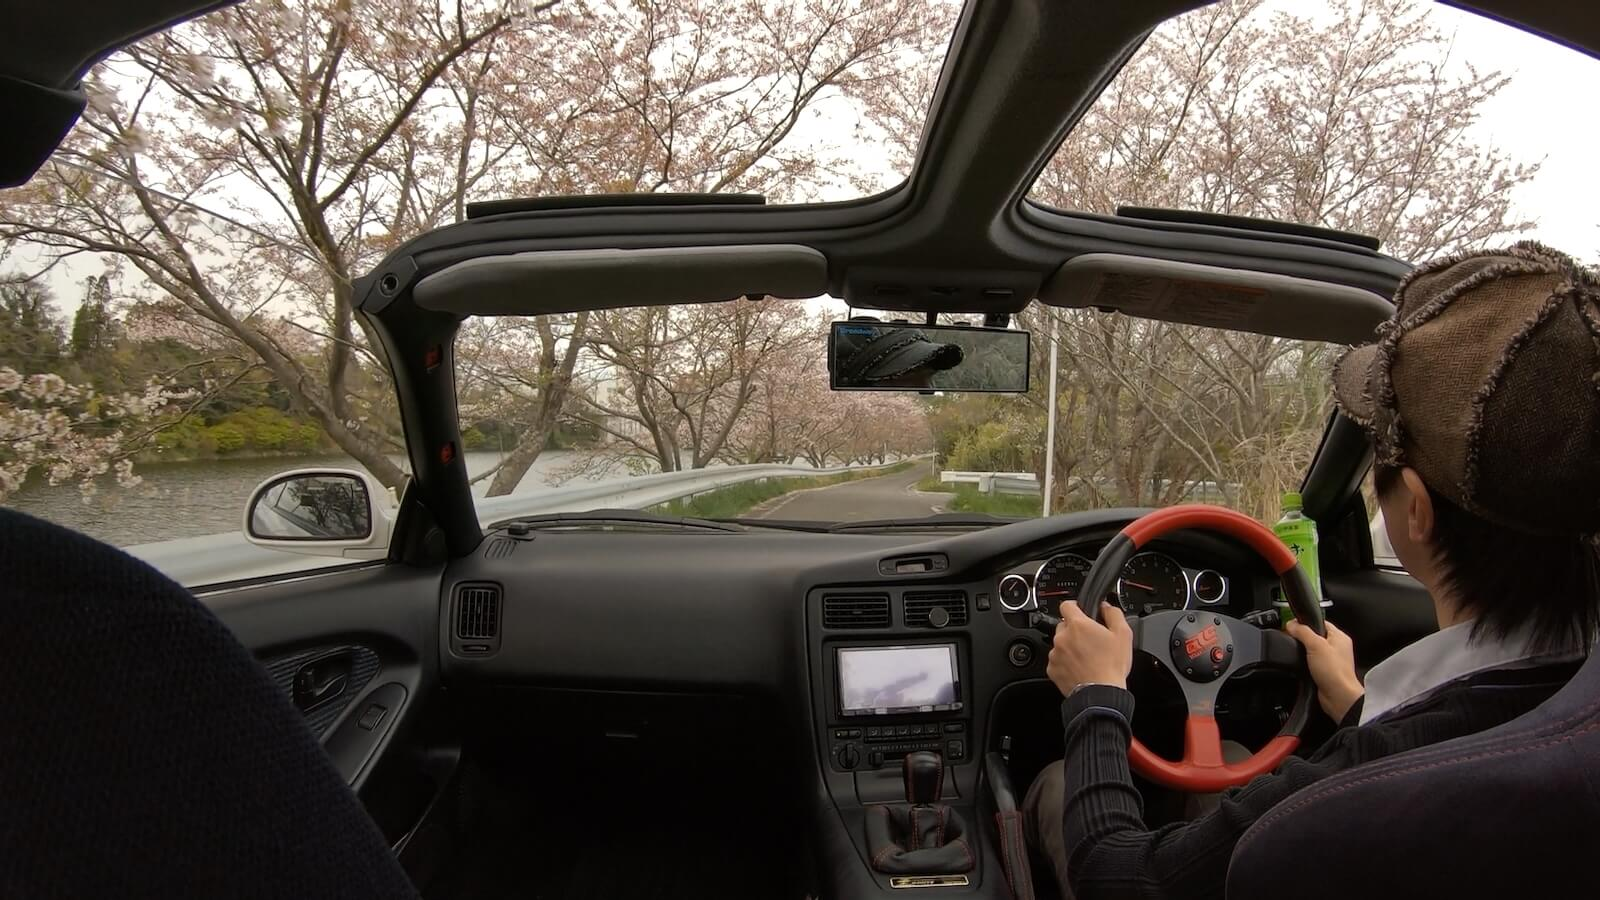 Photograph of Gopro7 in-vehicle driving on MR2